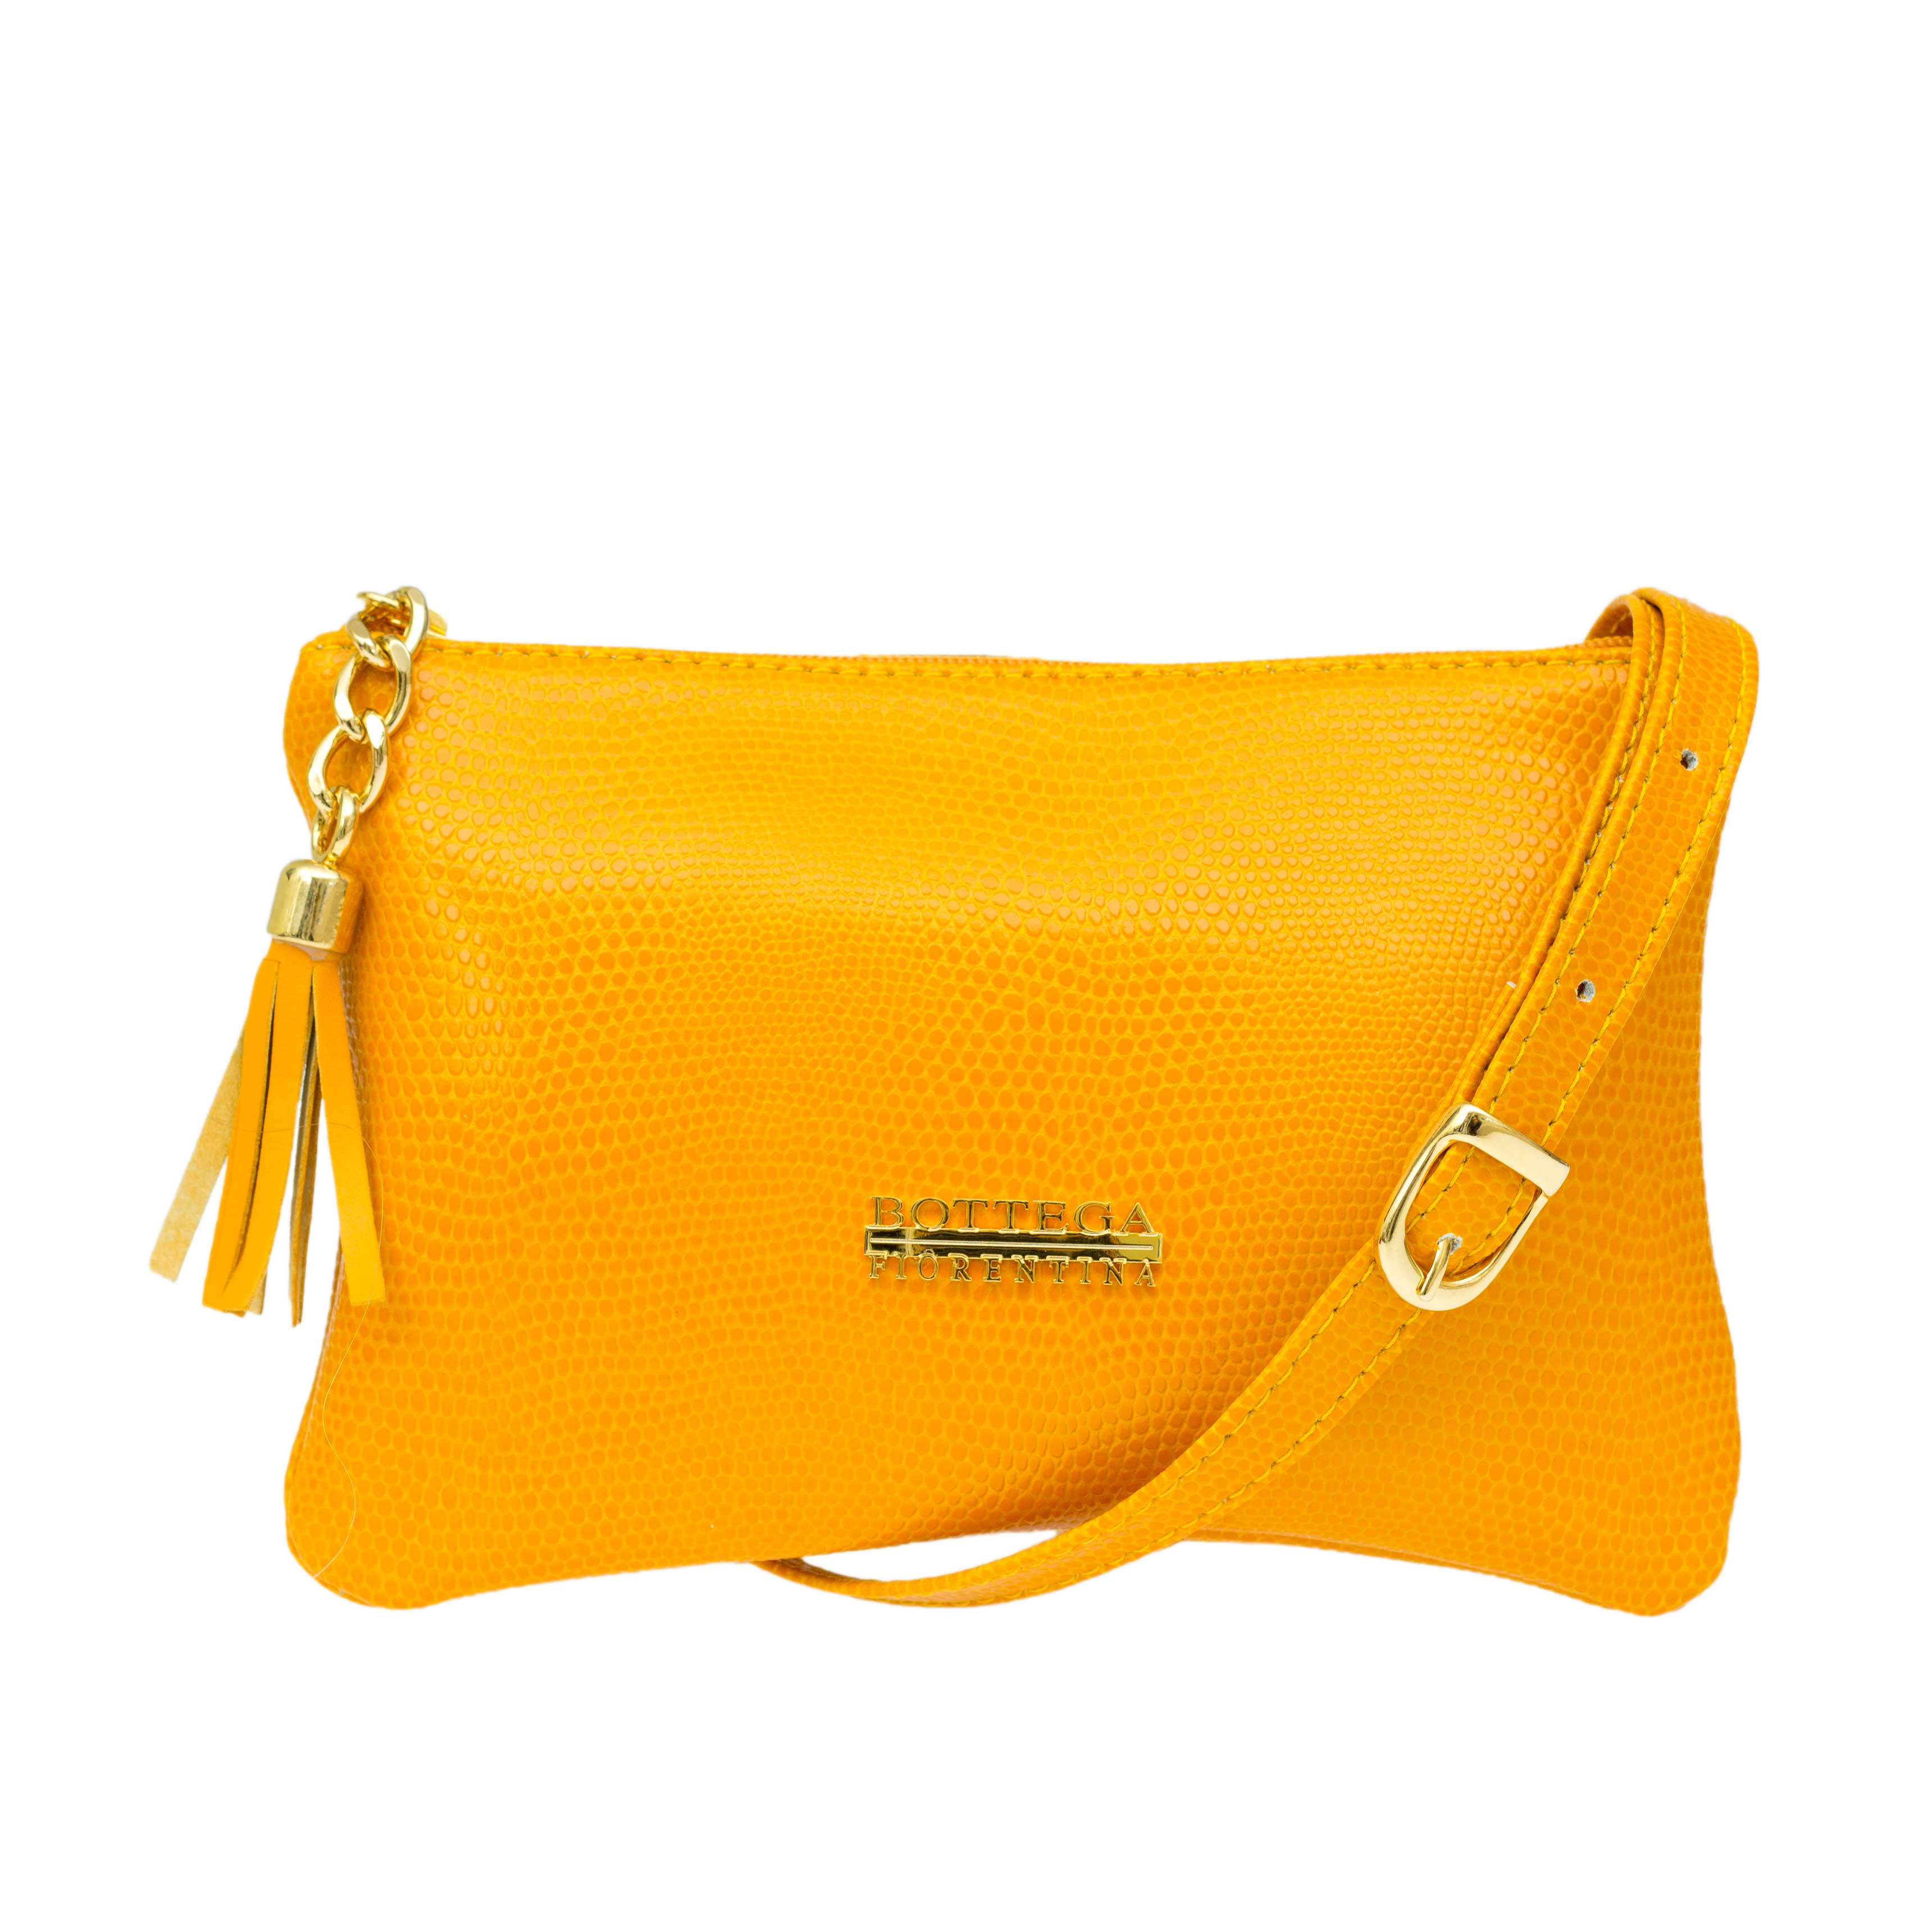 Bottega Fiorentina Italian Made Yellow Lizard Print Leather Small Crossbody Bag